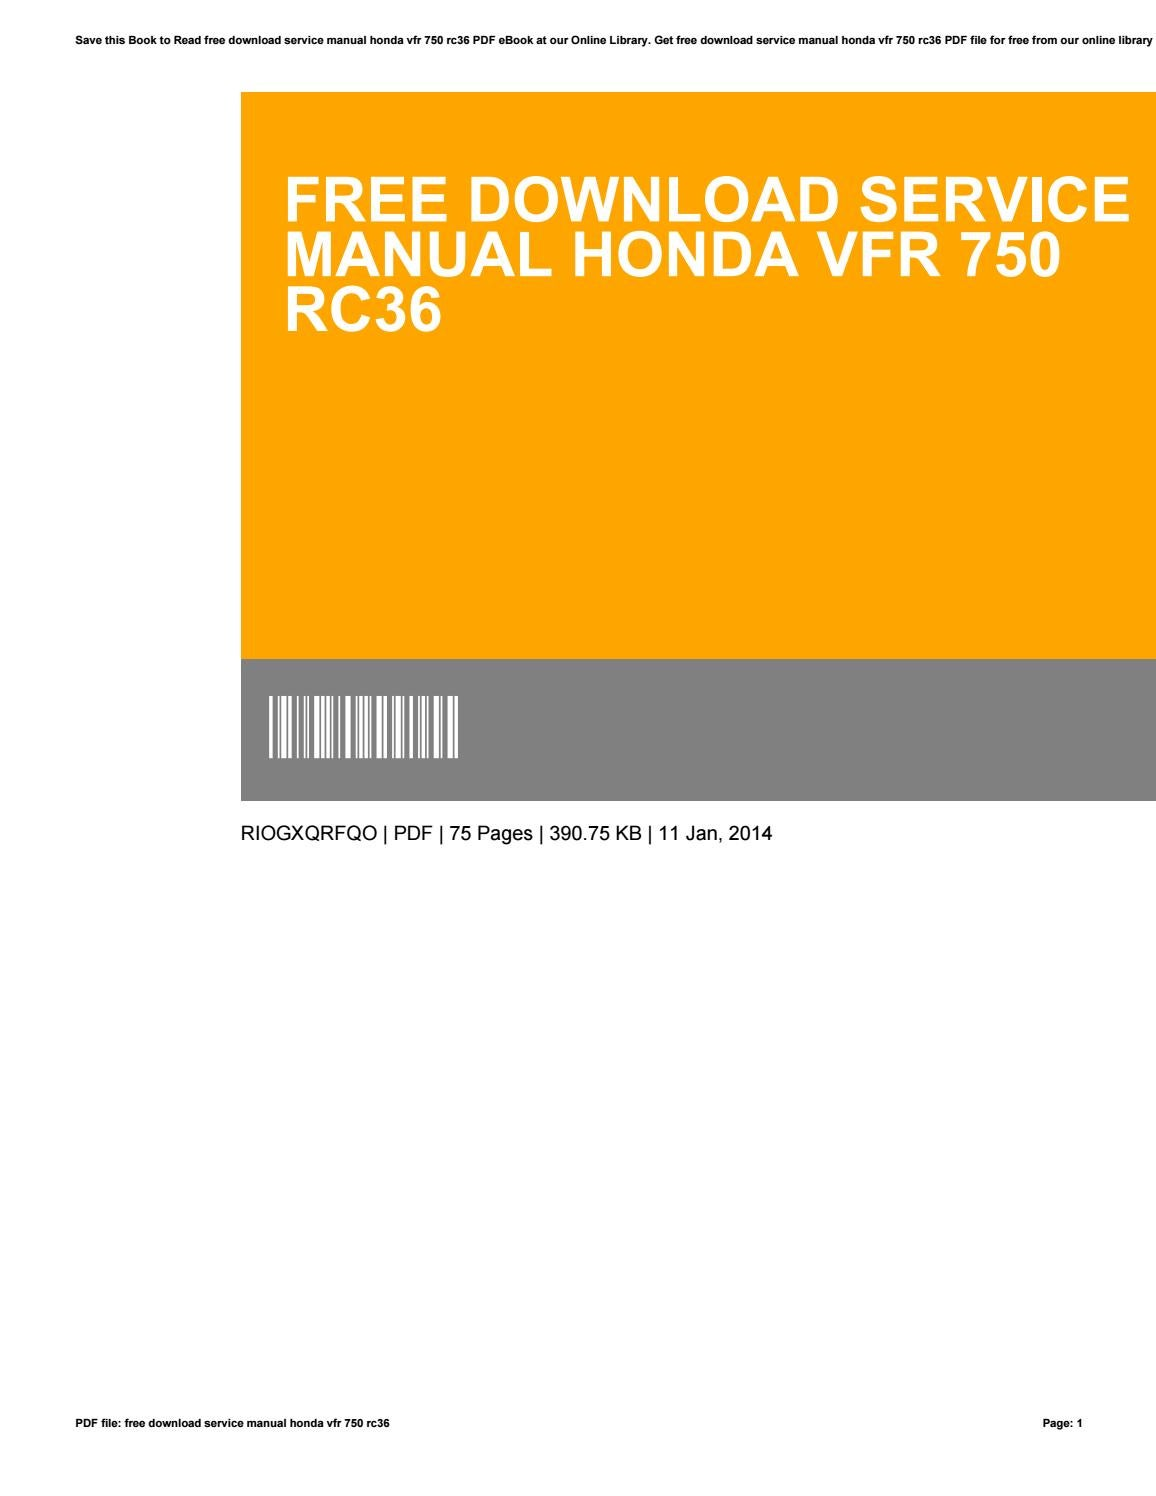 honda integra service manual ebook